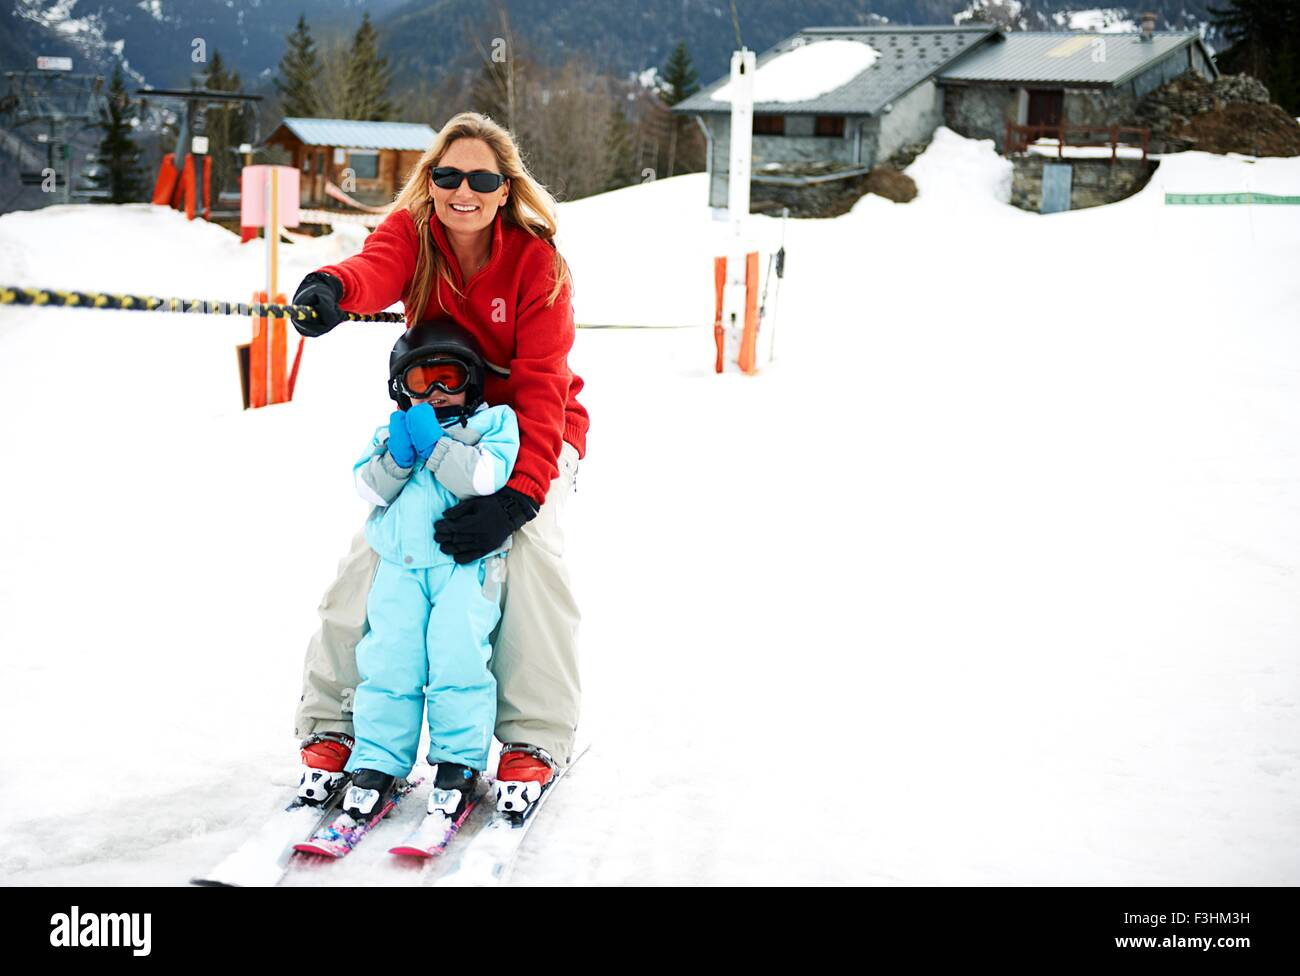 Male toddler in front of mother moving up on ski rope, Les Arcs,Villaroger,Savoie,France - Stock Image